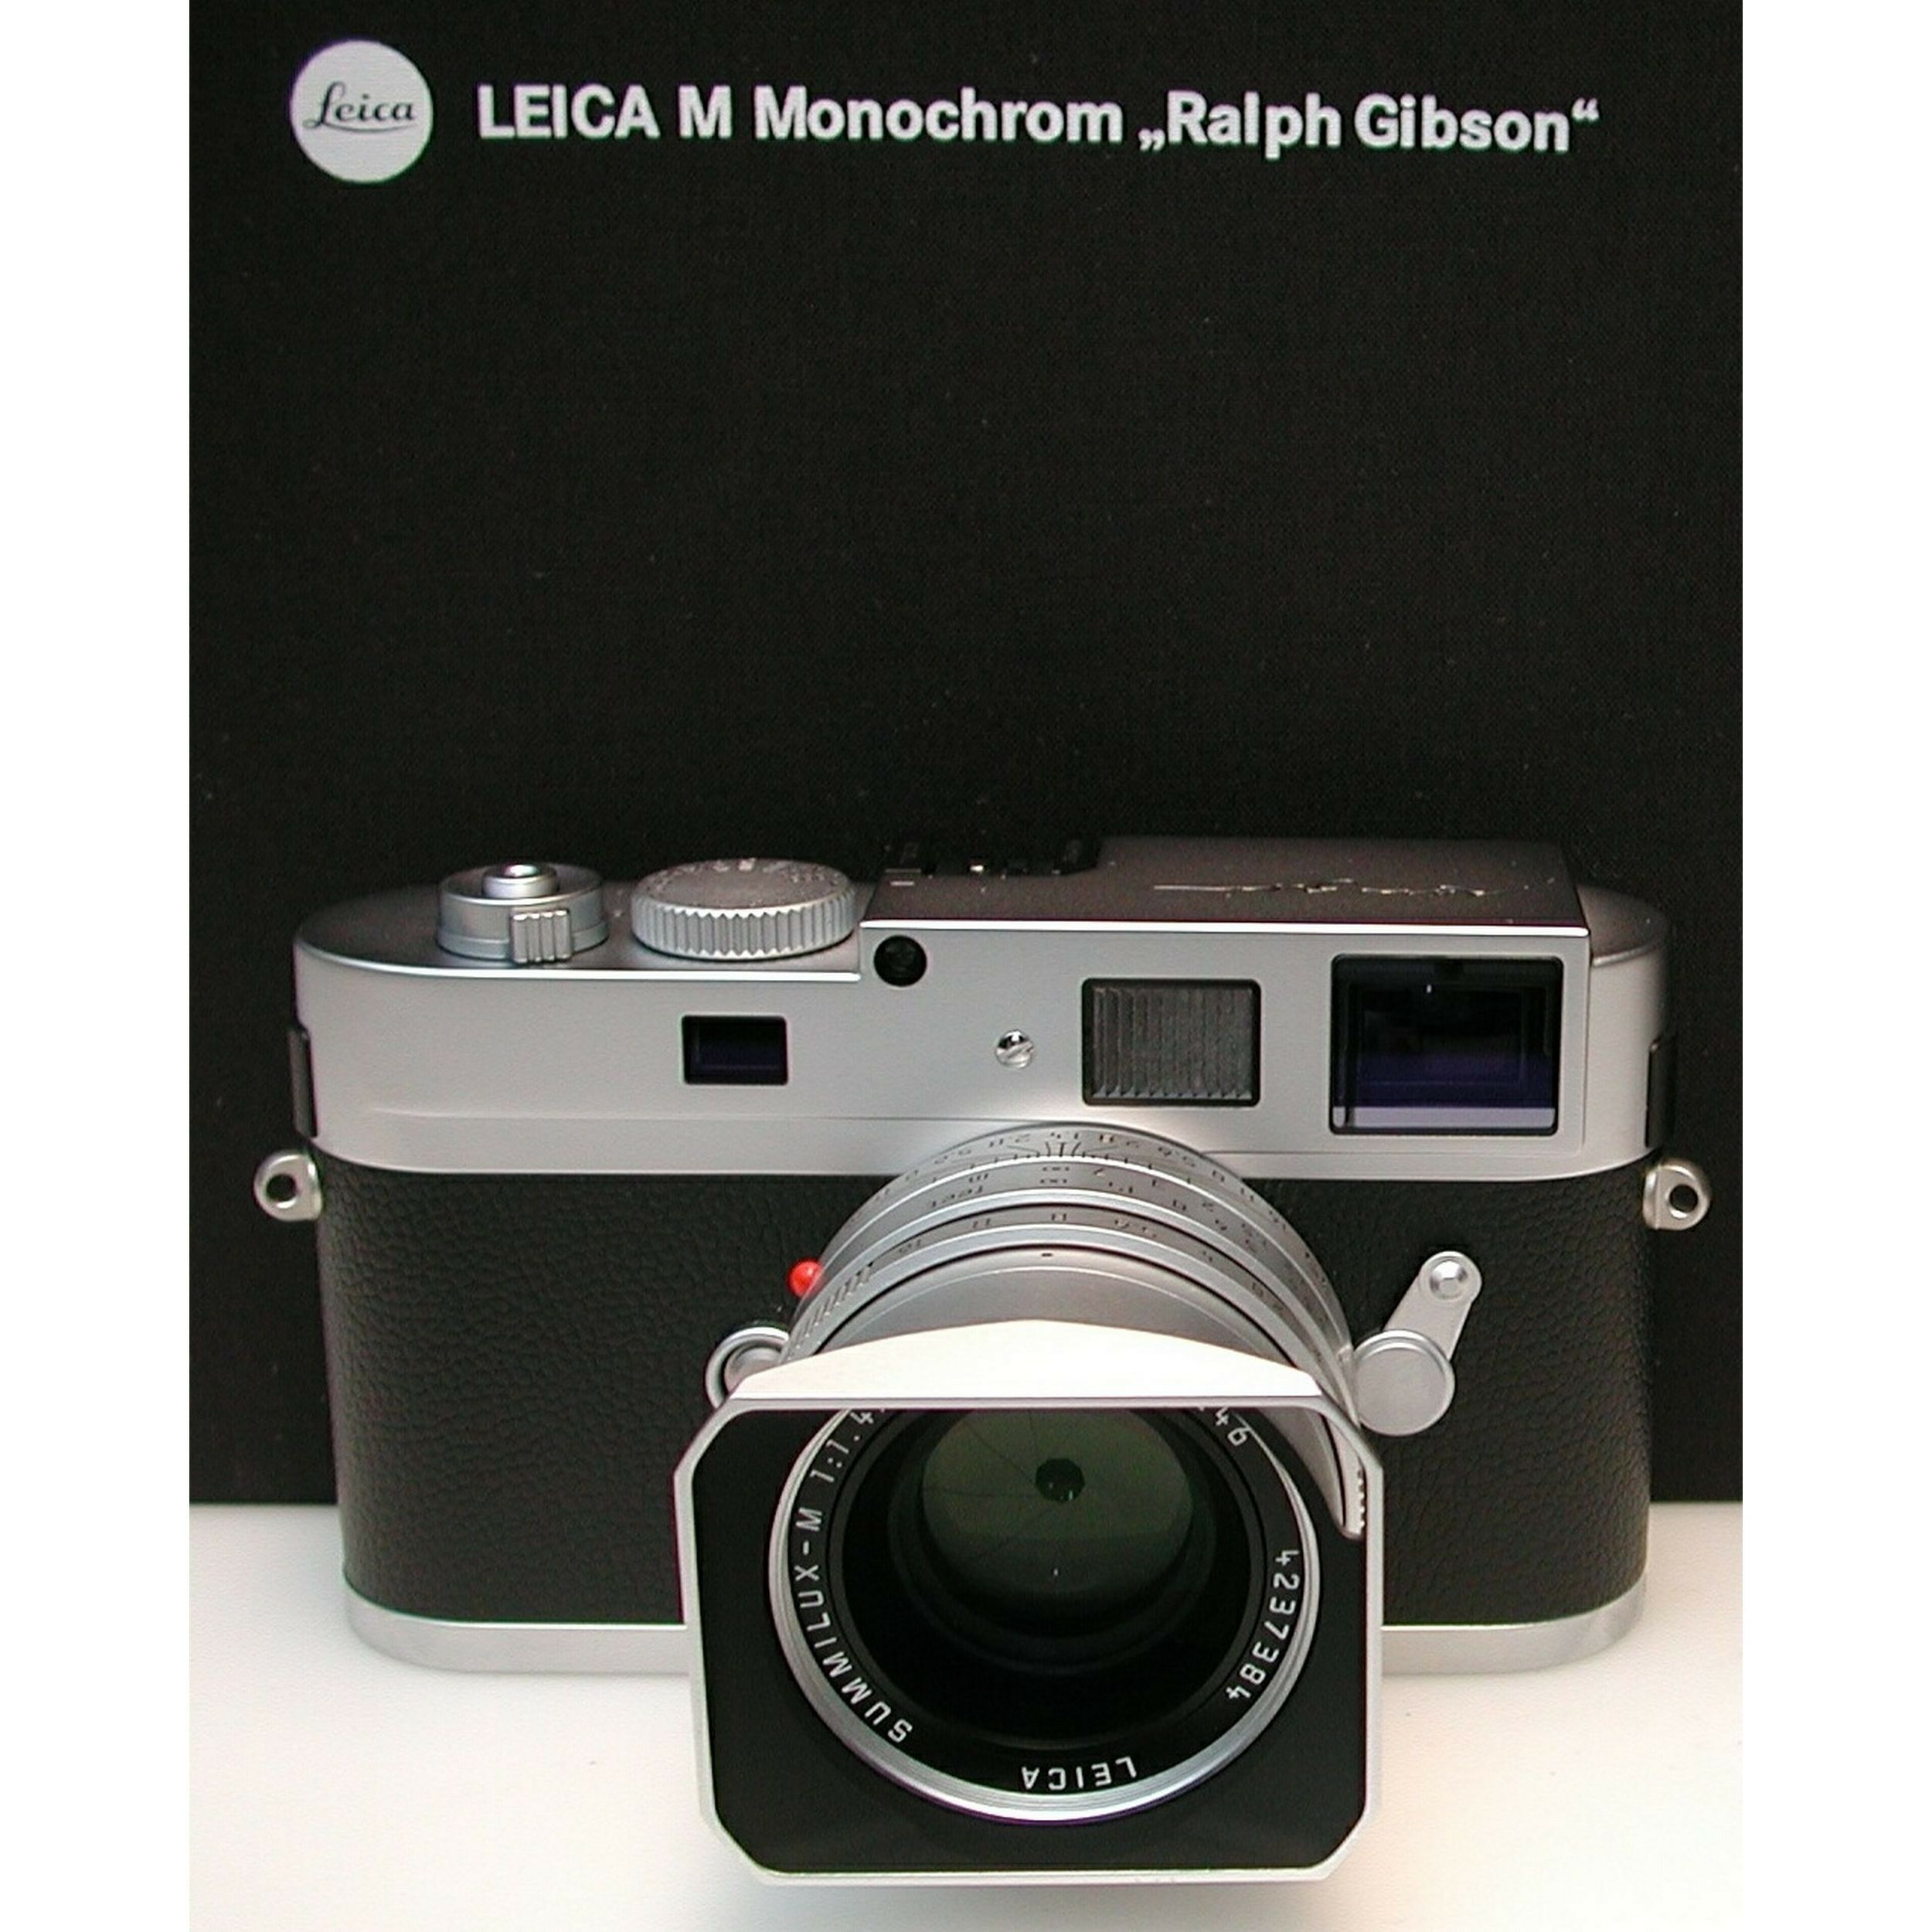 leica m monochrom ralph gibson box leica m monochrom leica m mount cameras leica m. Black Bedroom Furniture Sets. Home Design Ideas